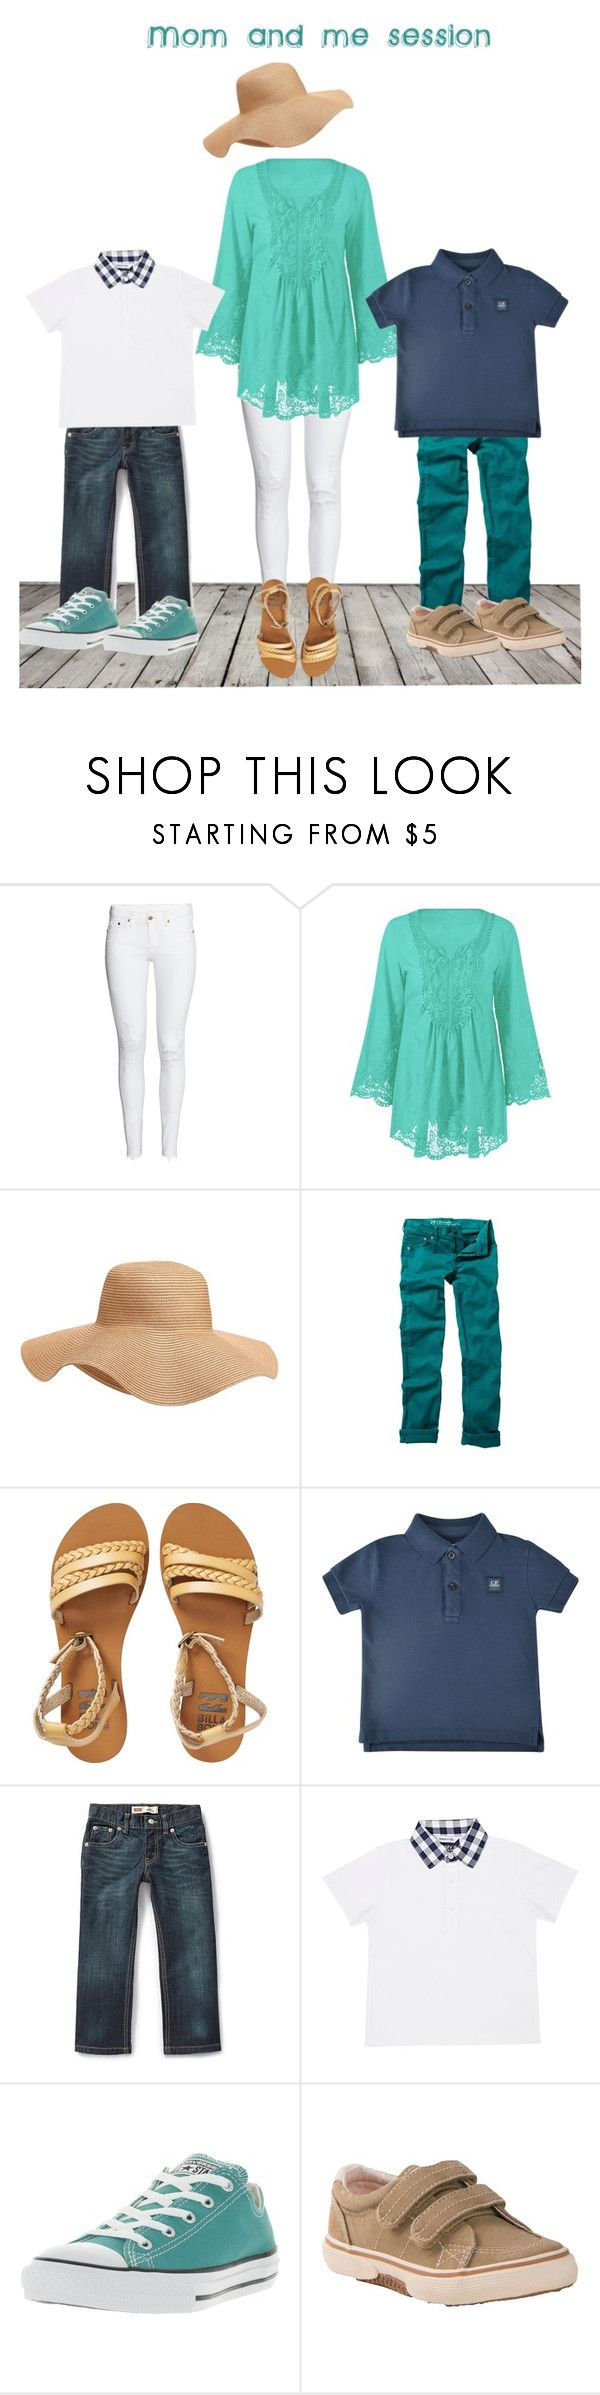 """""""Summer boy mom session outfits!"""" by emibphotography on Polyvore featuring H&M, Old Navy, Quiksilver, Billabong, C.P. Company, Levi's, Jimmy Bravo, Converse, Sperry and momandme"""